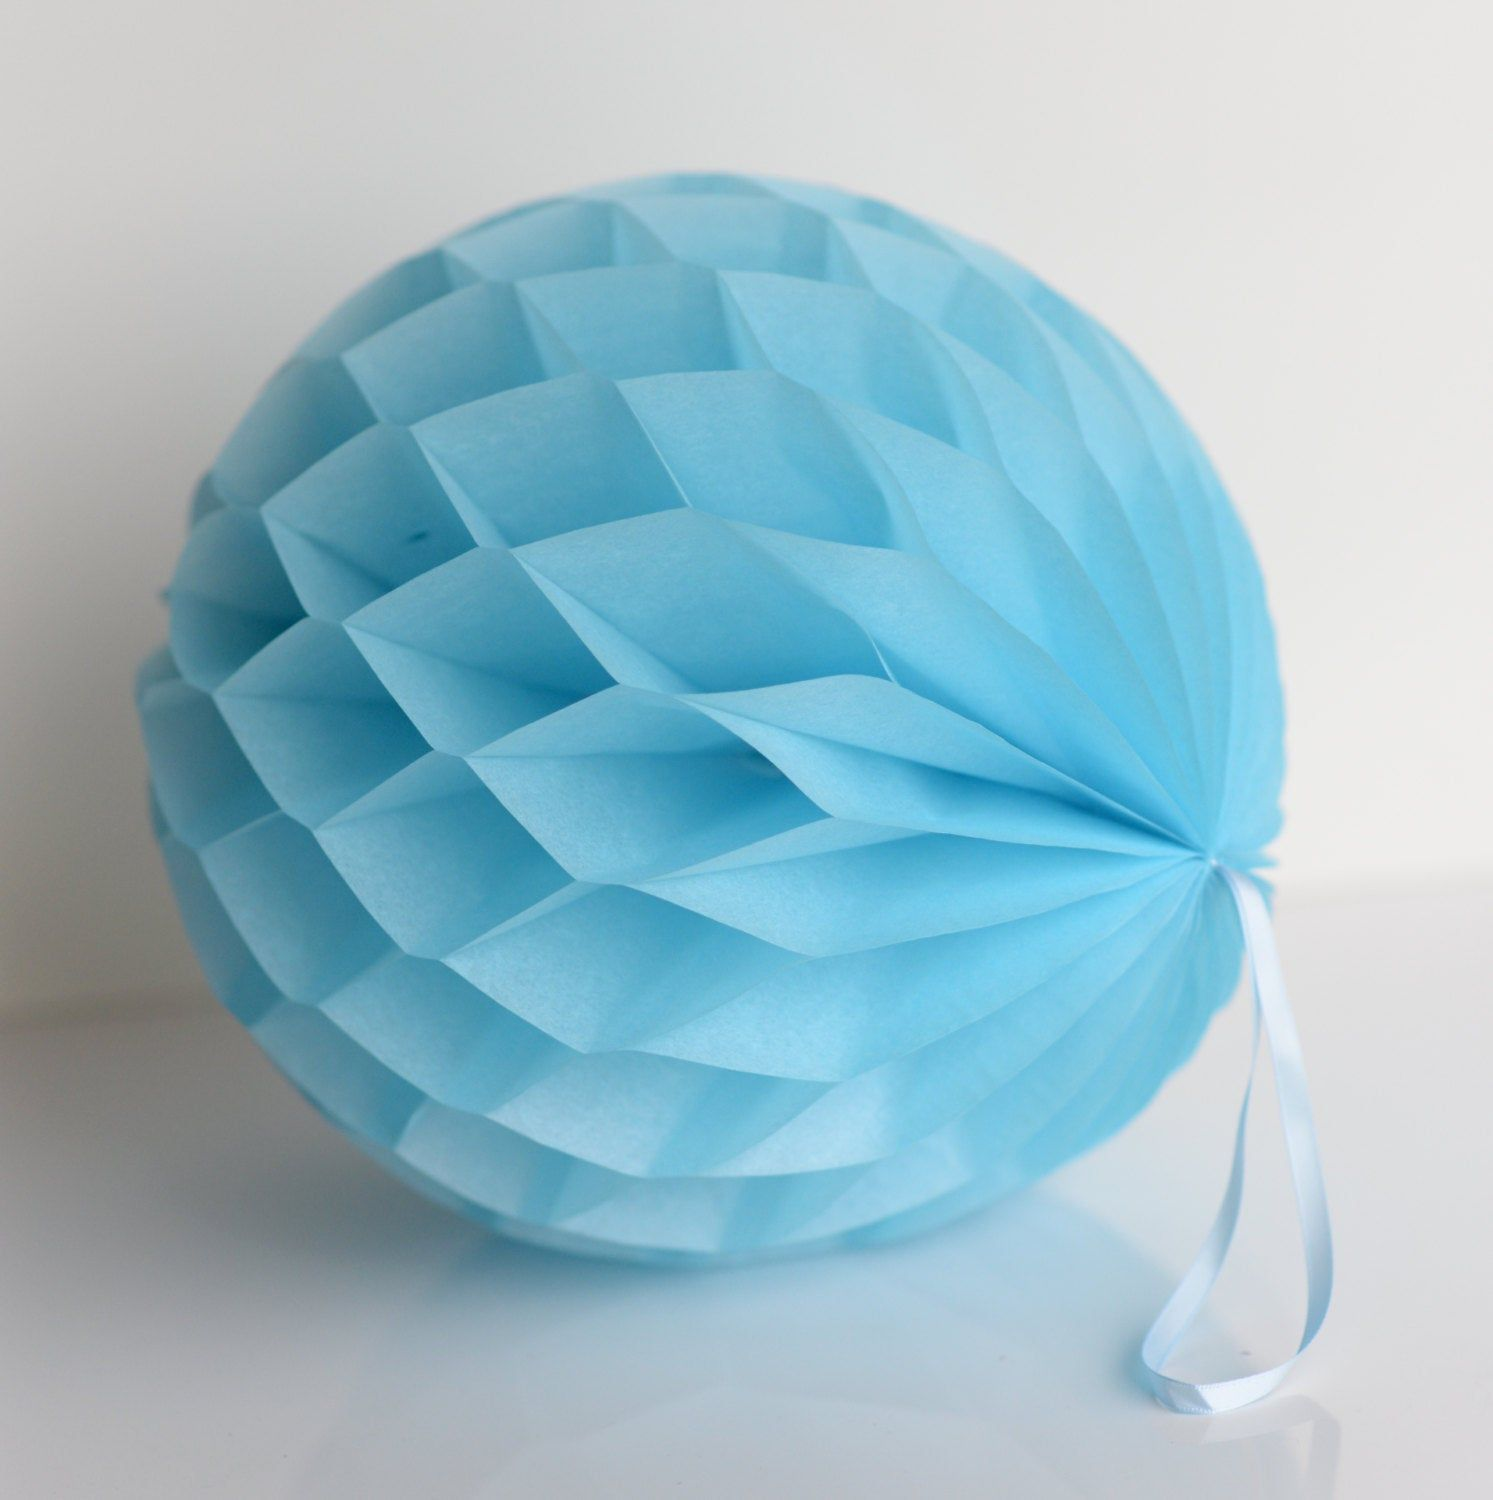 Lot of 3 Tissue Paper Honeycomb Ball Blue 4 8 12 Pom Pom Tissue Balls Made in USA Baby Shower Birthday Party Photo Shoot